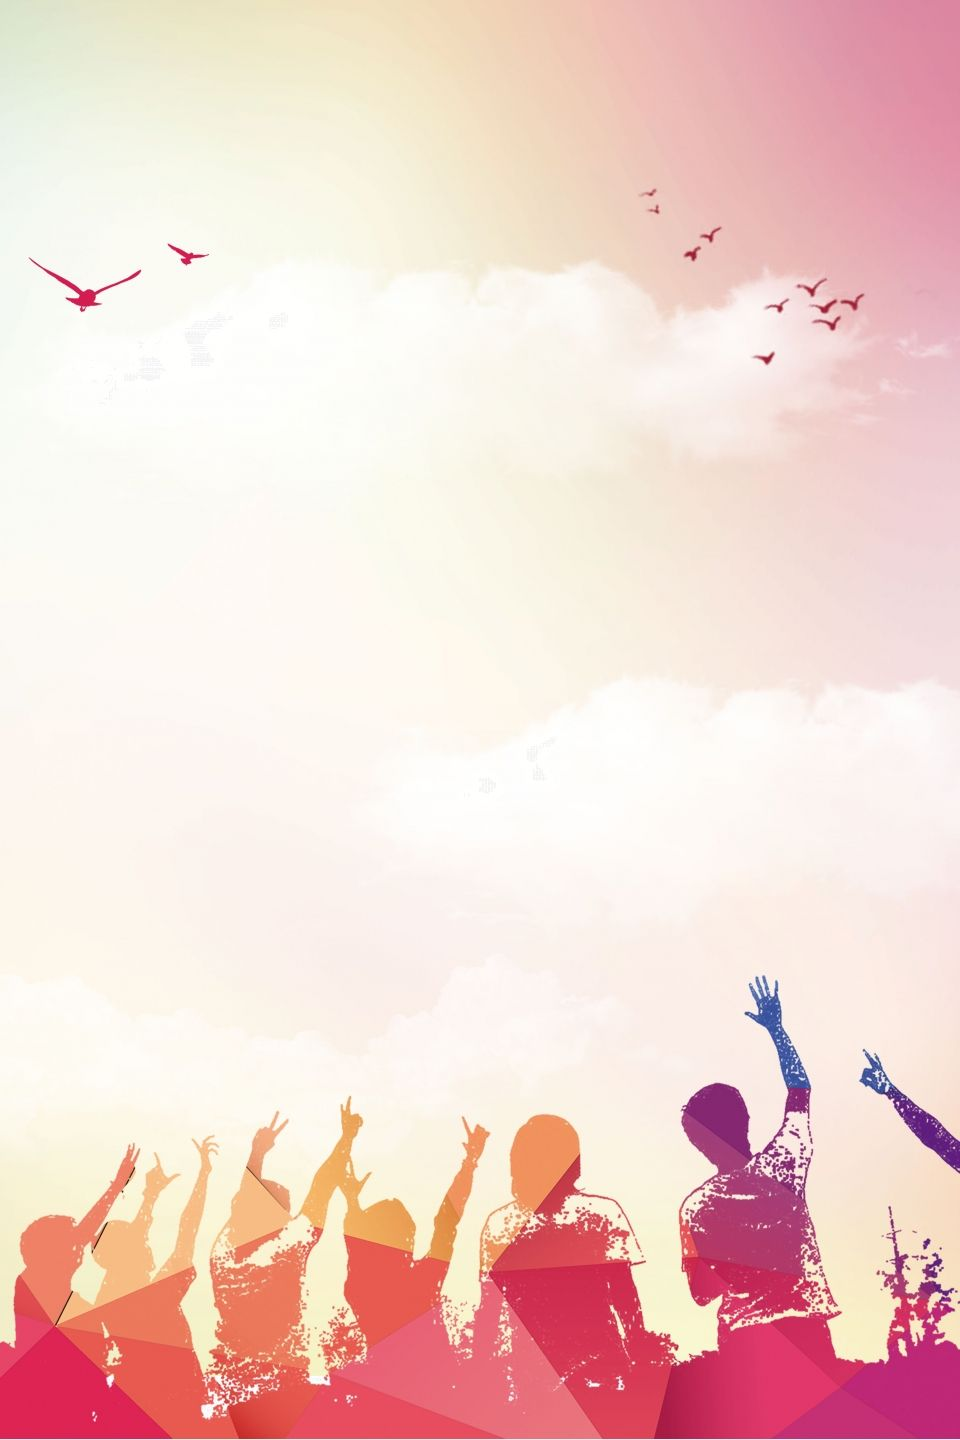 Welcome To New School Poster Background Psd Poster Background Design Welcome Background Background Design